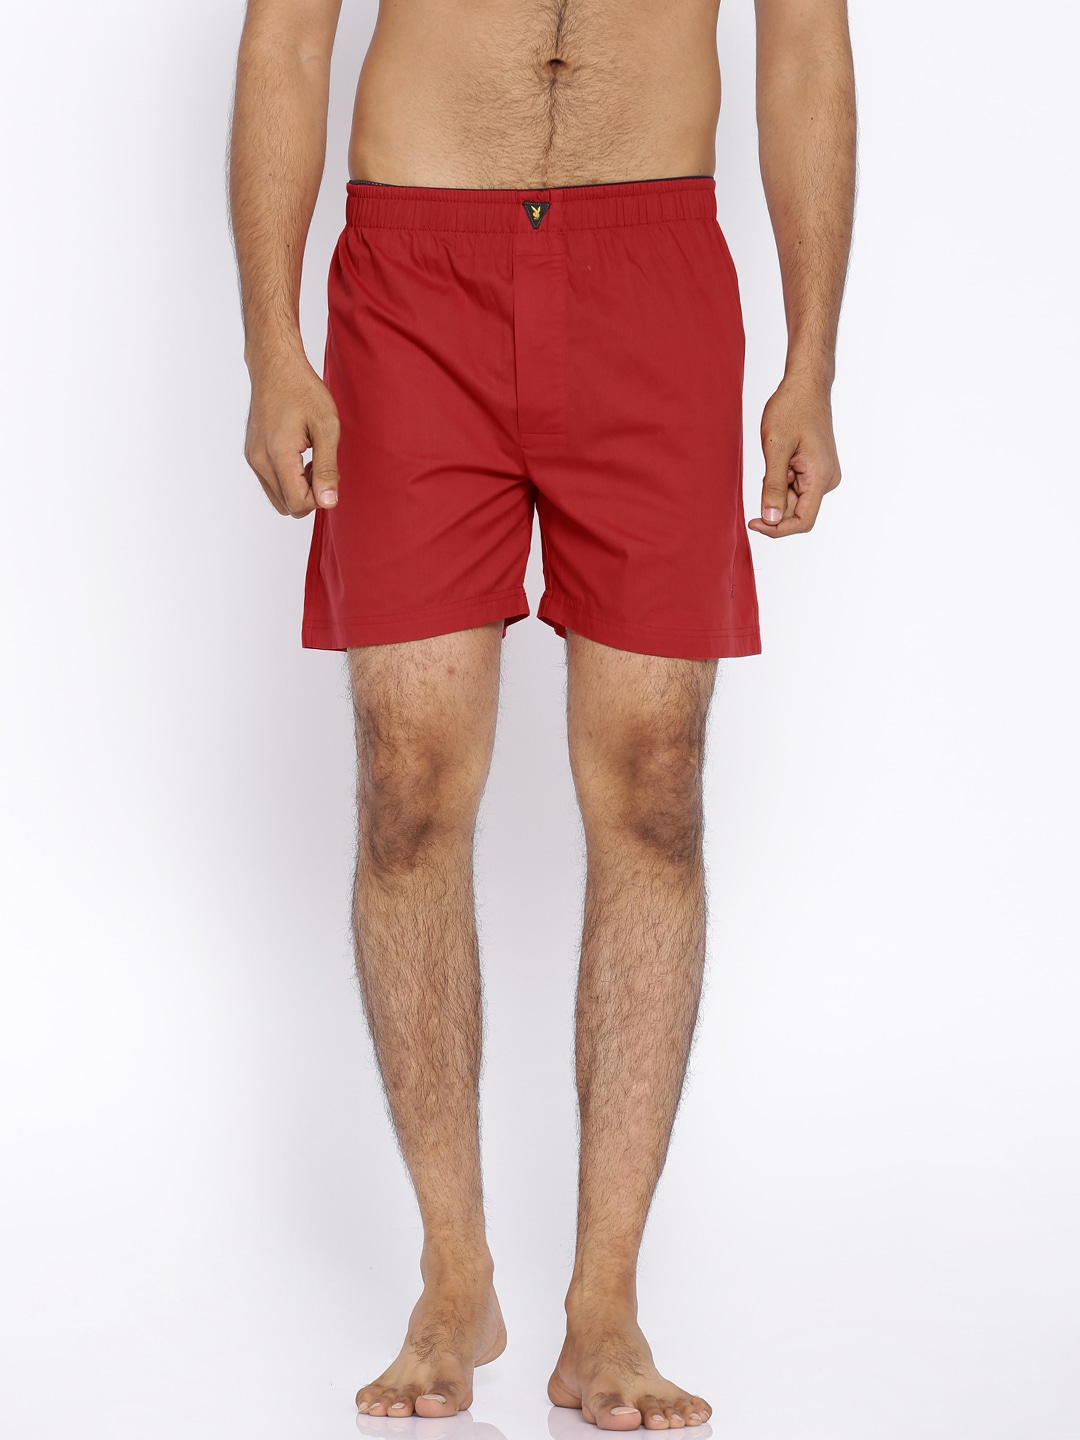 Playboy Red Boxers LW17 image